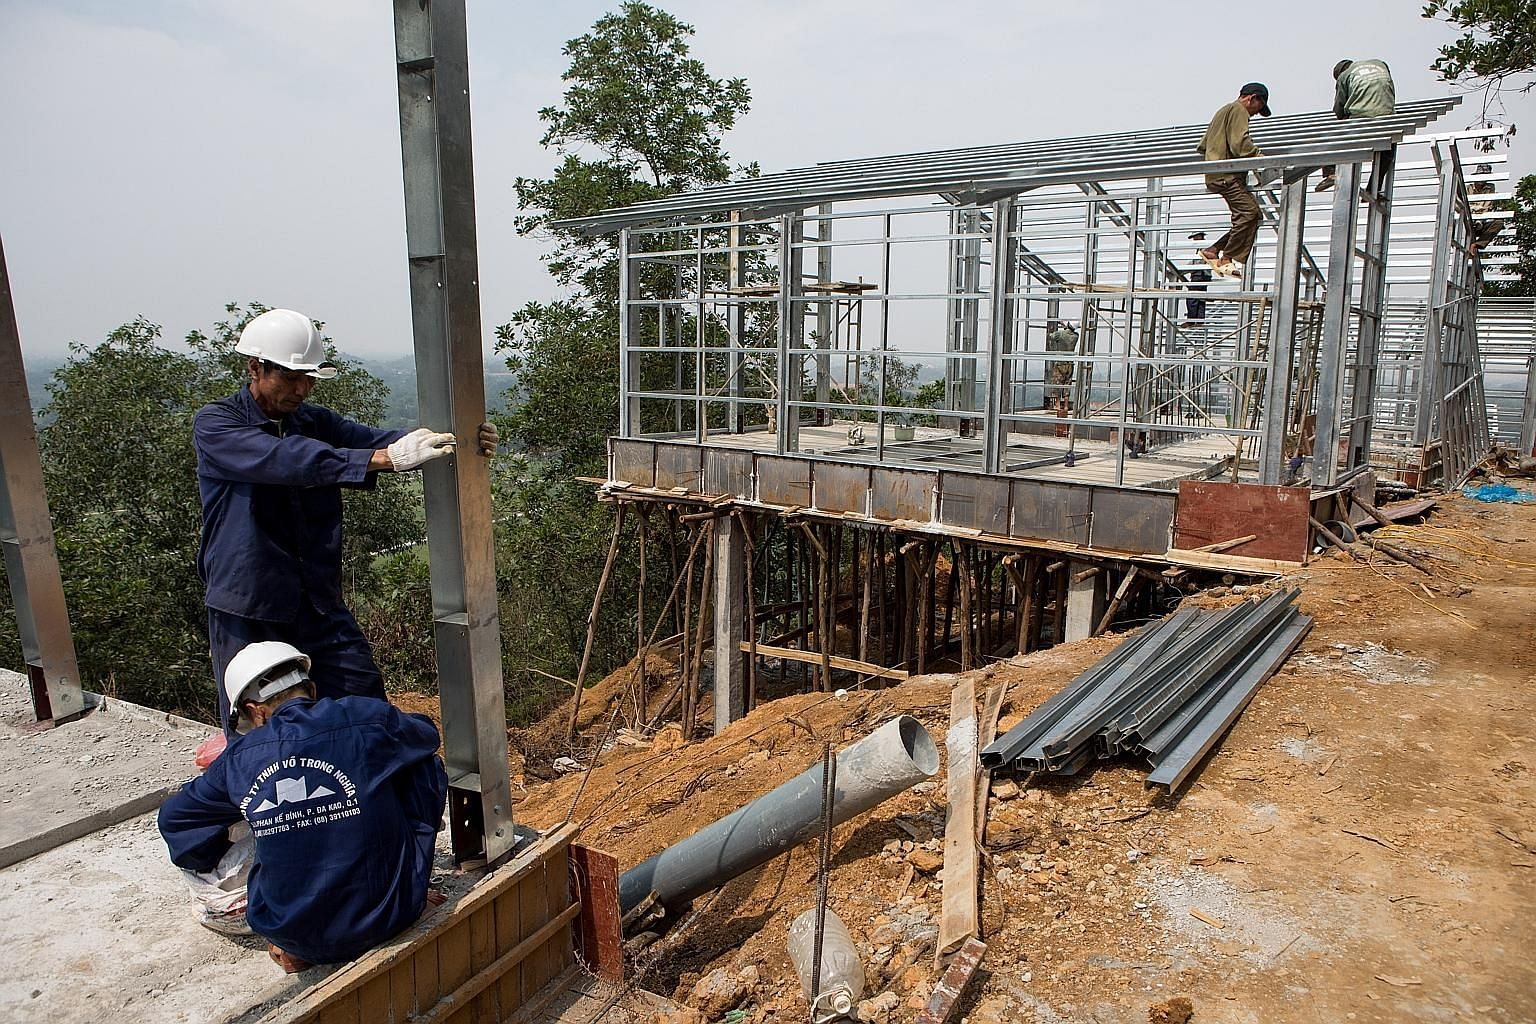 Builders construct two models of the S House, designed by architect Vo Trong Nghia, in Hanoi, Vietnam, in April.